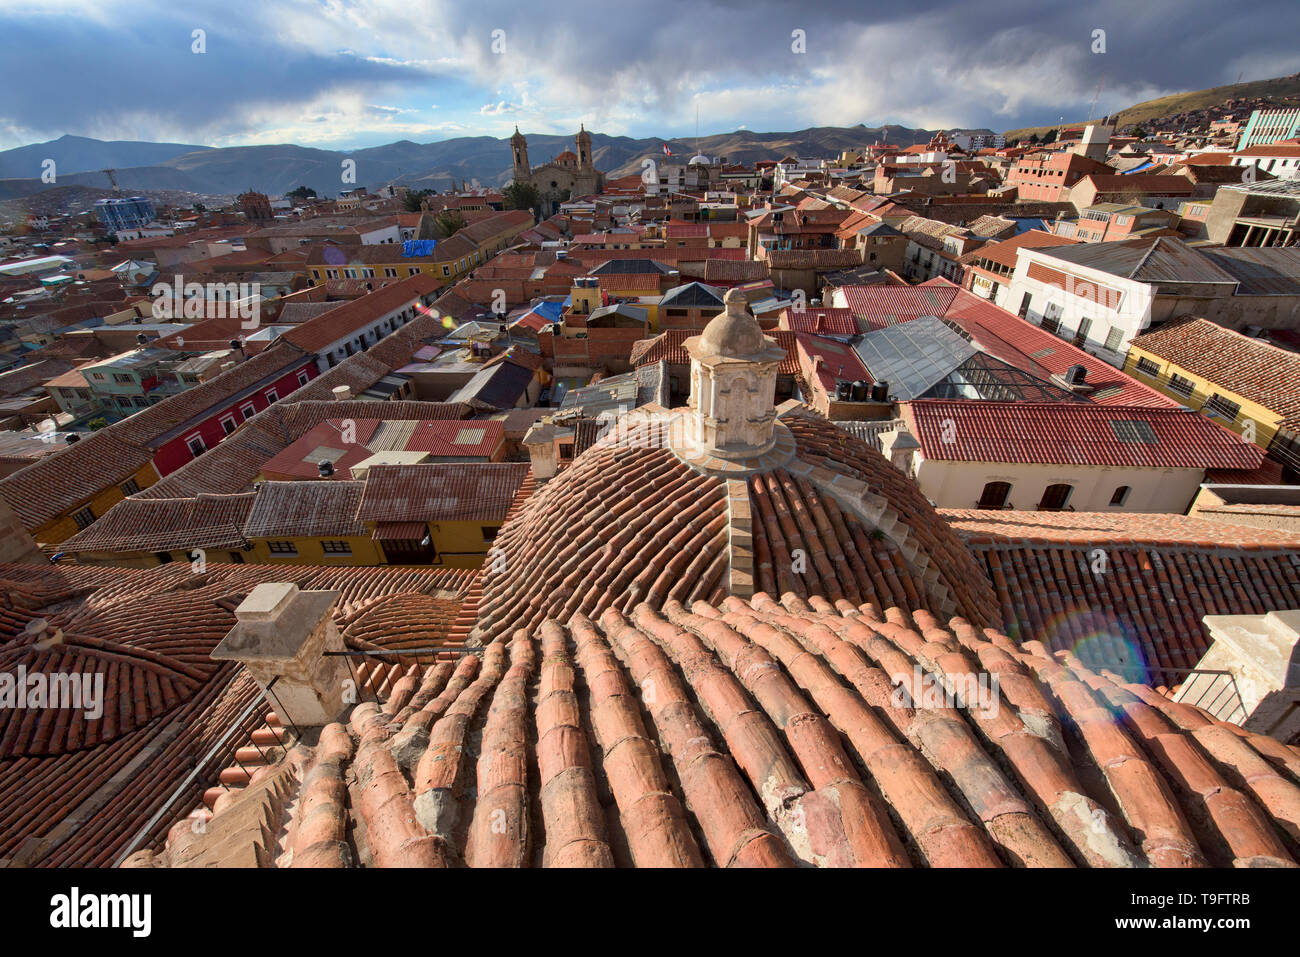 Rooftop view of the San Francisco Church and Convent, Potosí, Bolivia - Stock Image